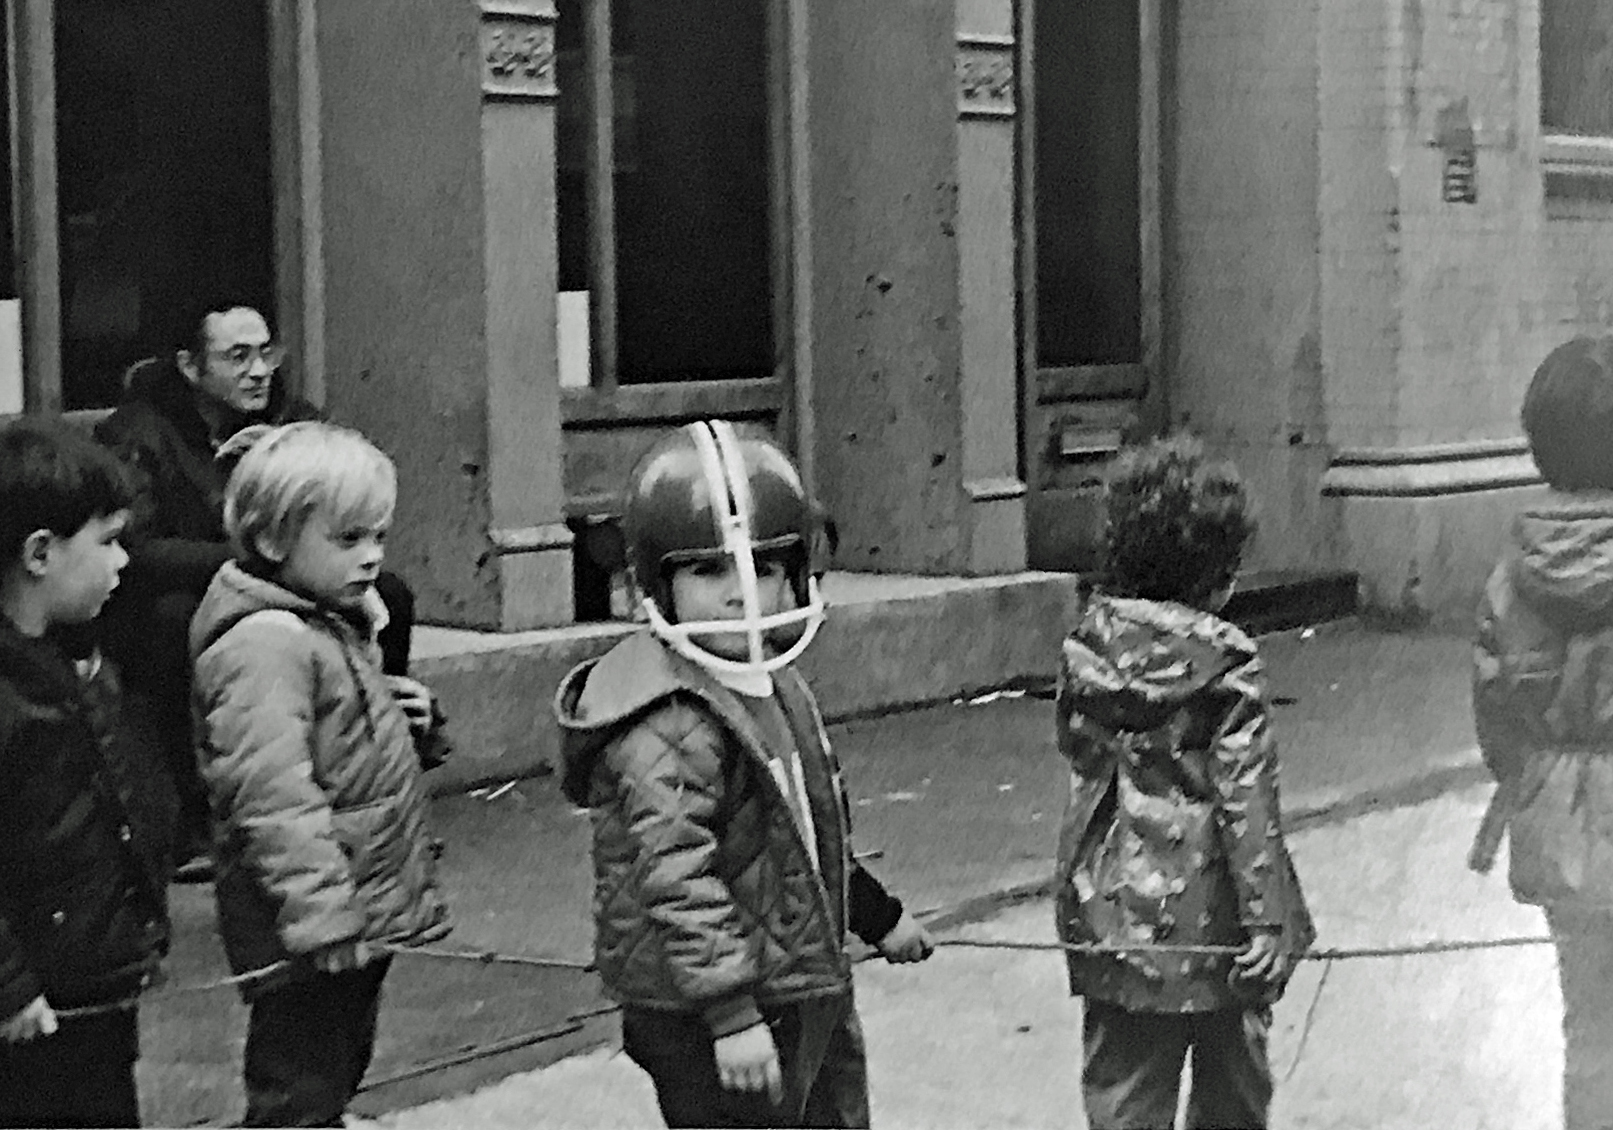 A group of children make their way through SoHo, ca. 1975 (photo: Jody Harrow)